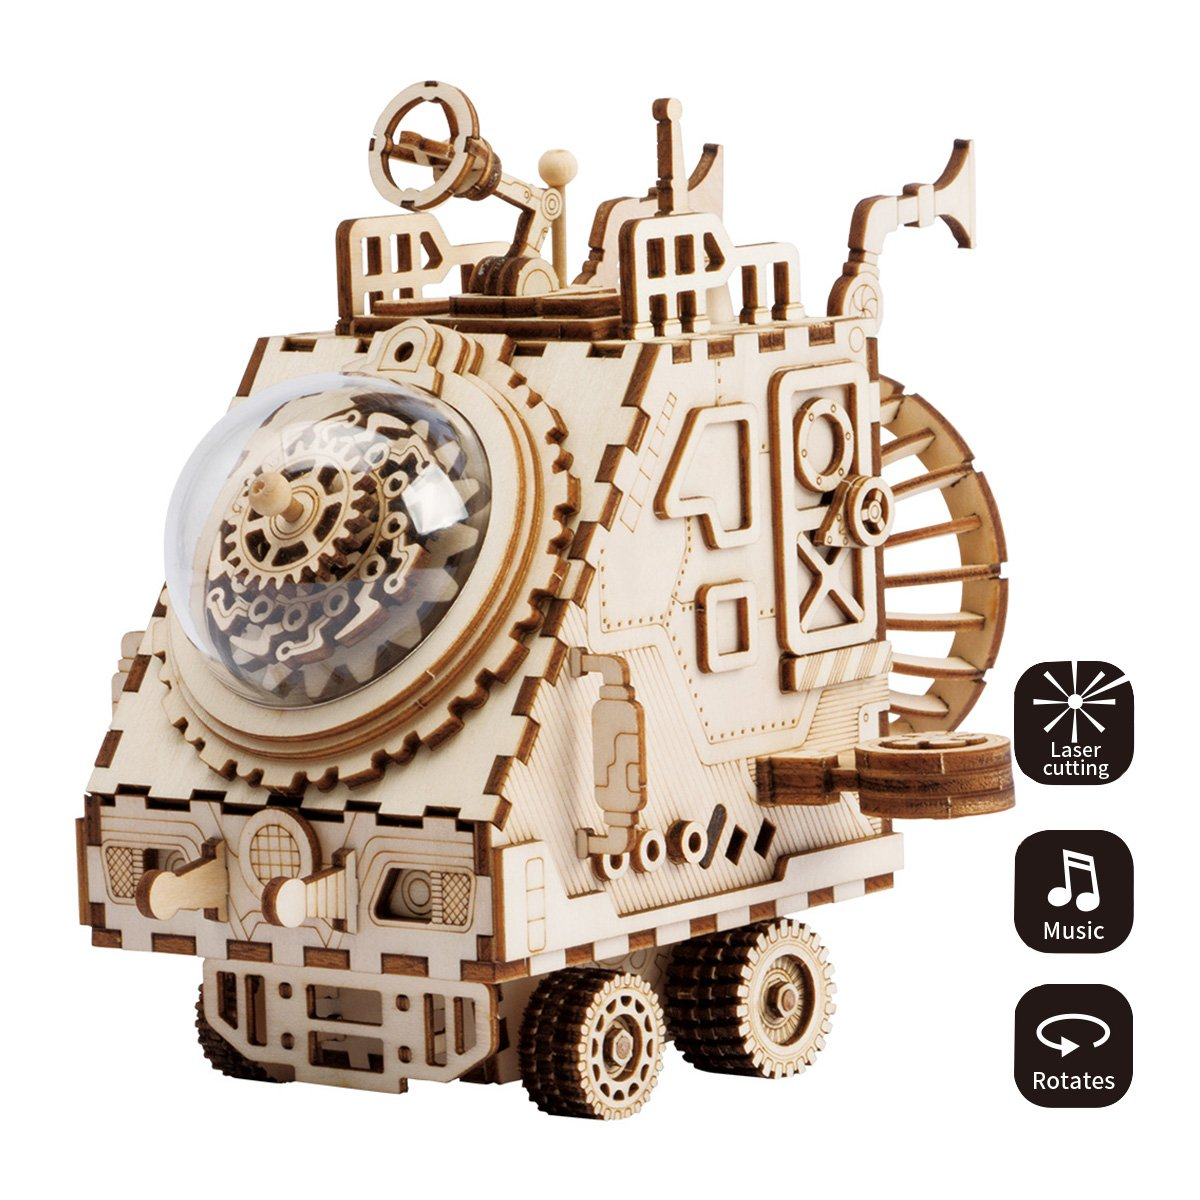 ROBOTIME 3D Laser Cut Wooden Puzzle Music Box Kit DIY Robot Toy RoboBunny Craft Kit Best Birthday Gifts for Men & Women